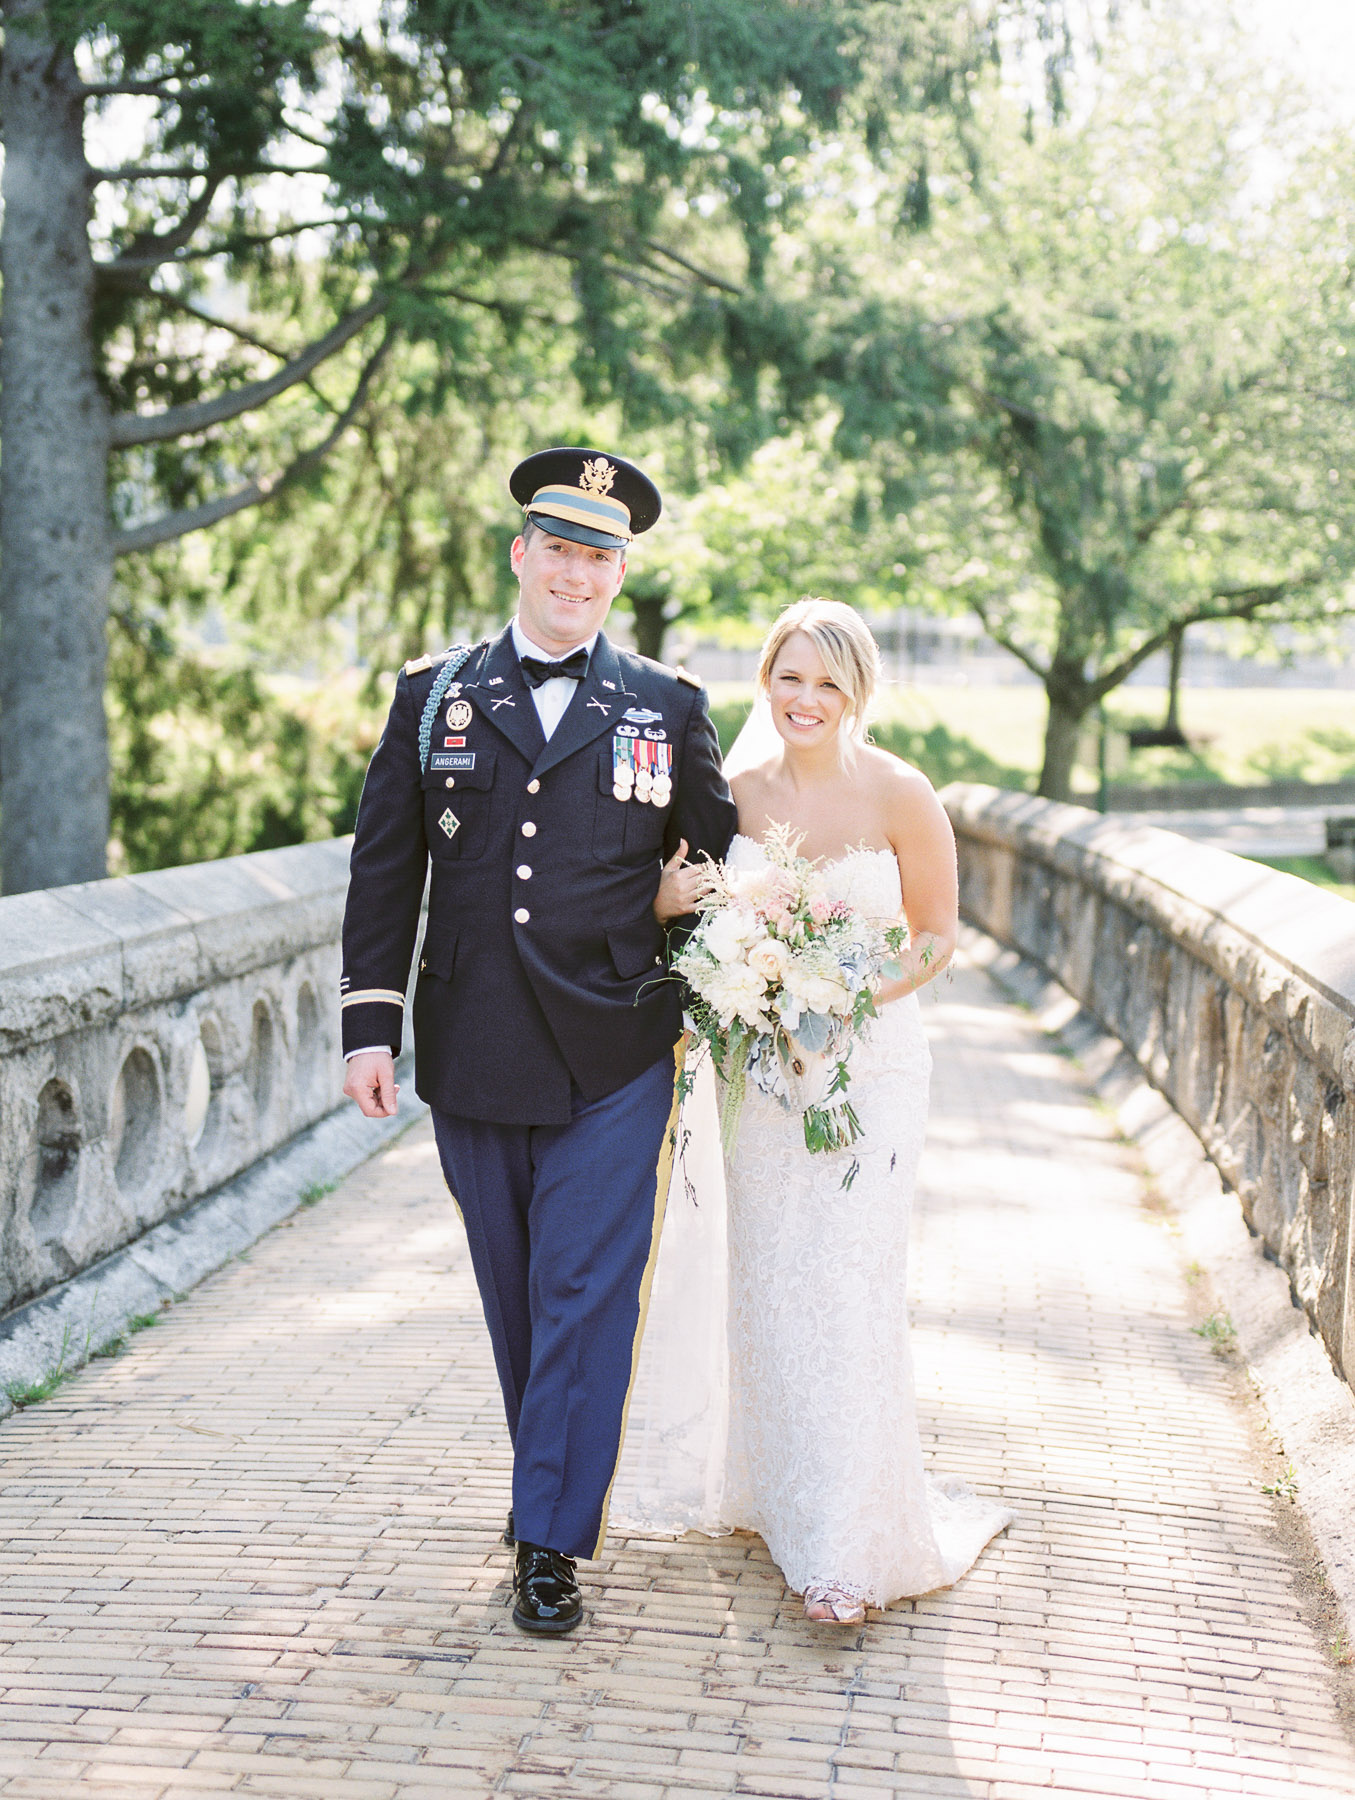 West Point Military Wedding at Thayer Hotel by Michelle Lange Photography-49.jpg